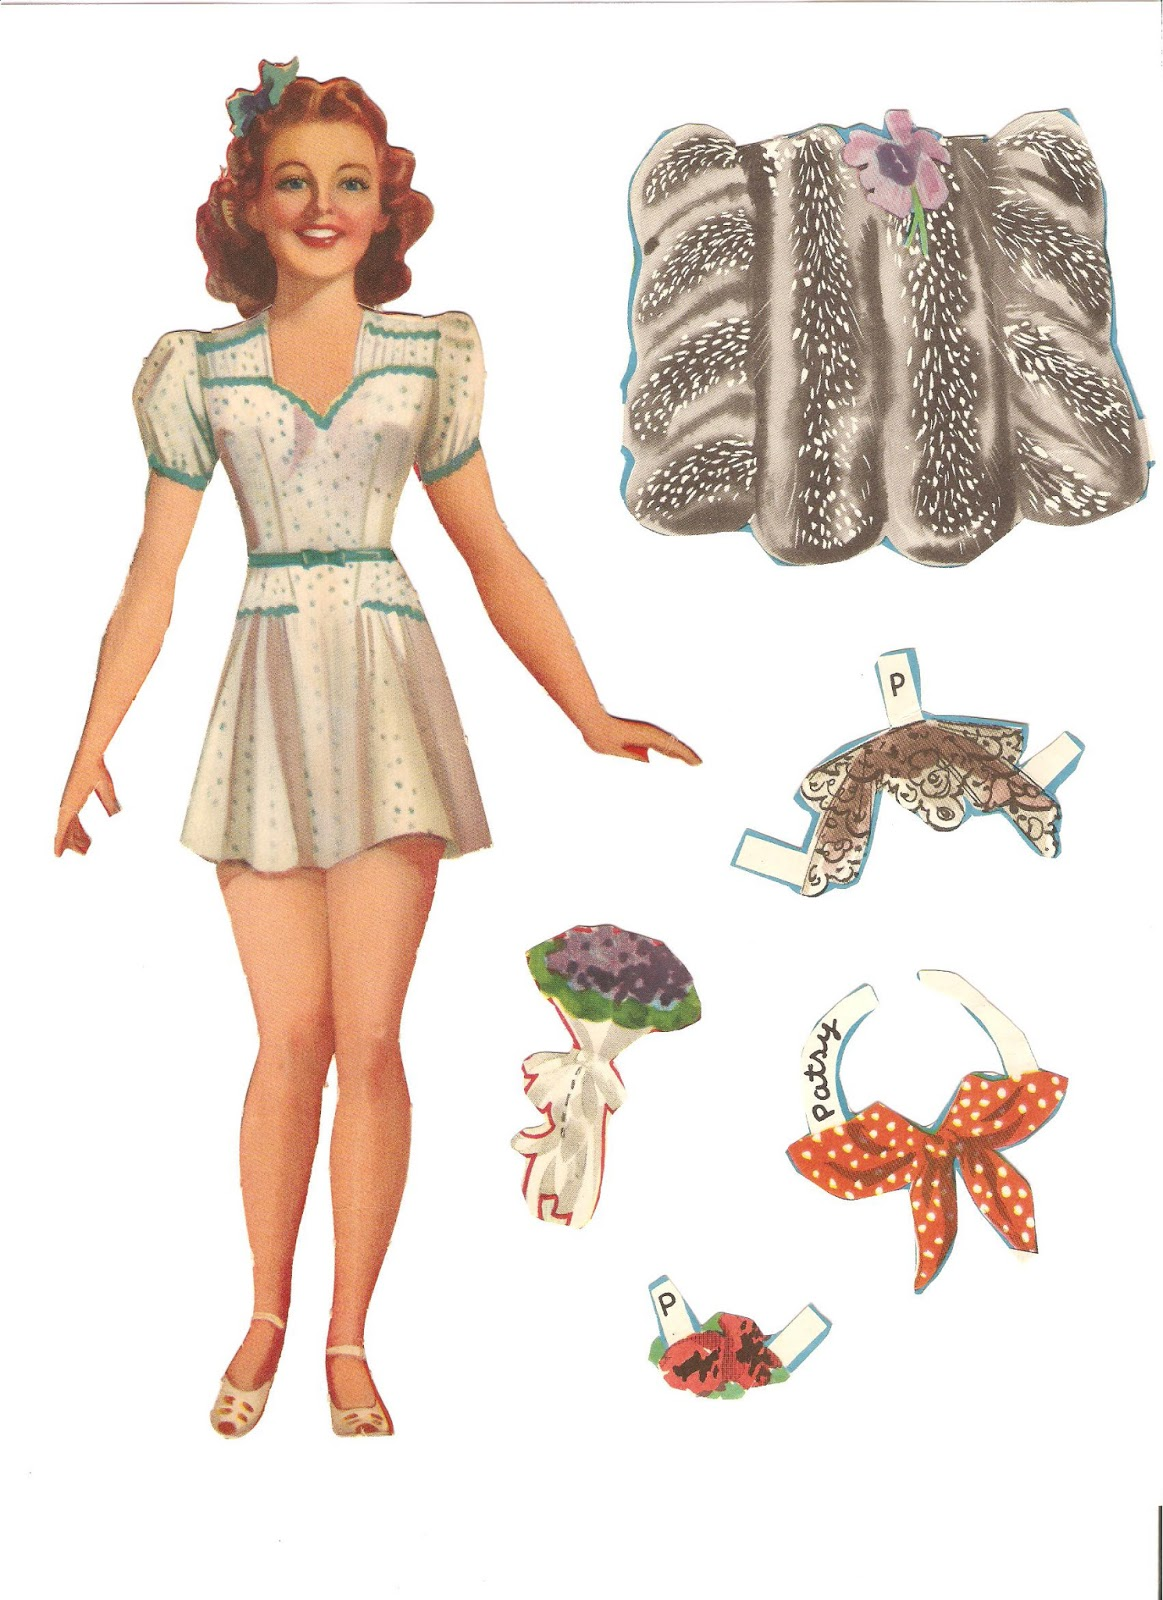 A Guide To Vintage Barbie Dolls, Clothing, Accessories and 60